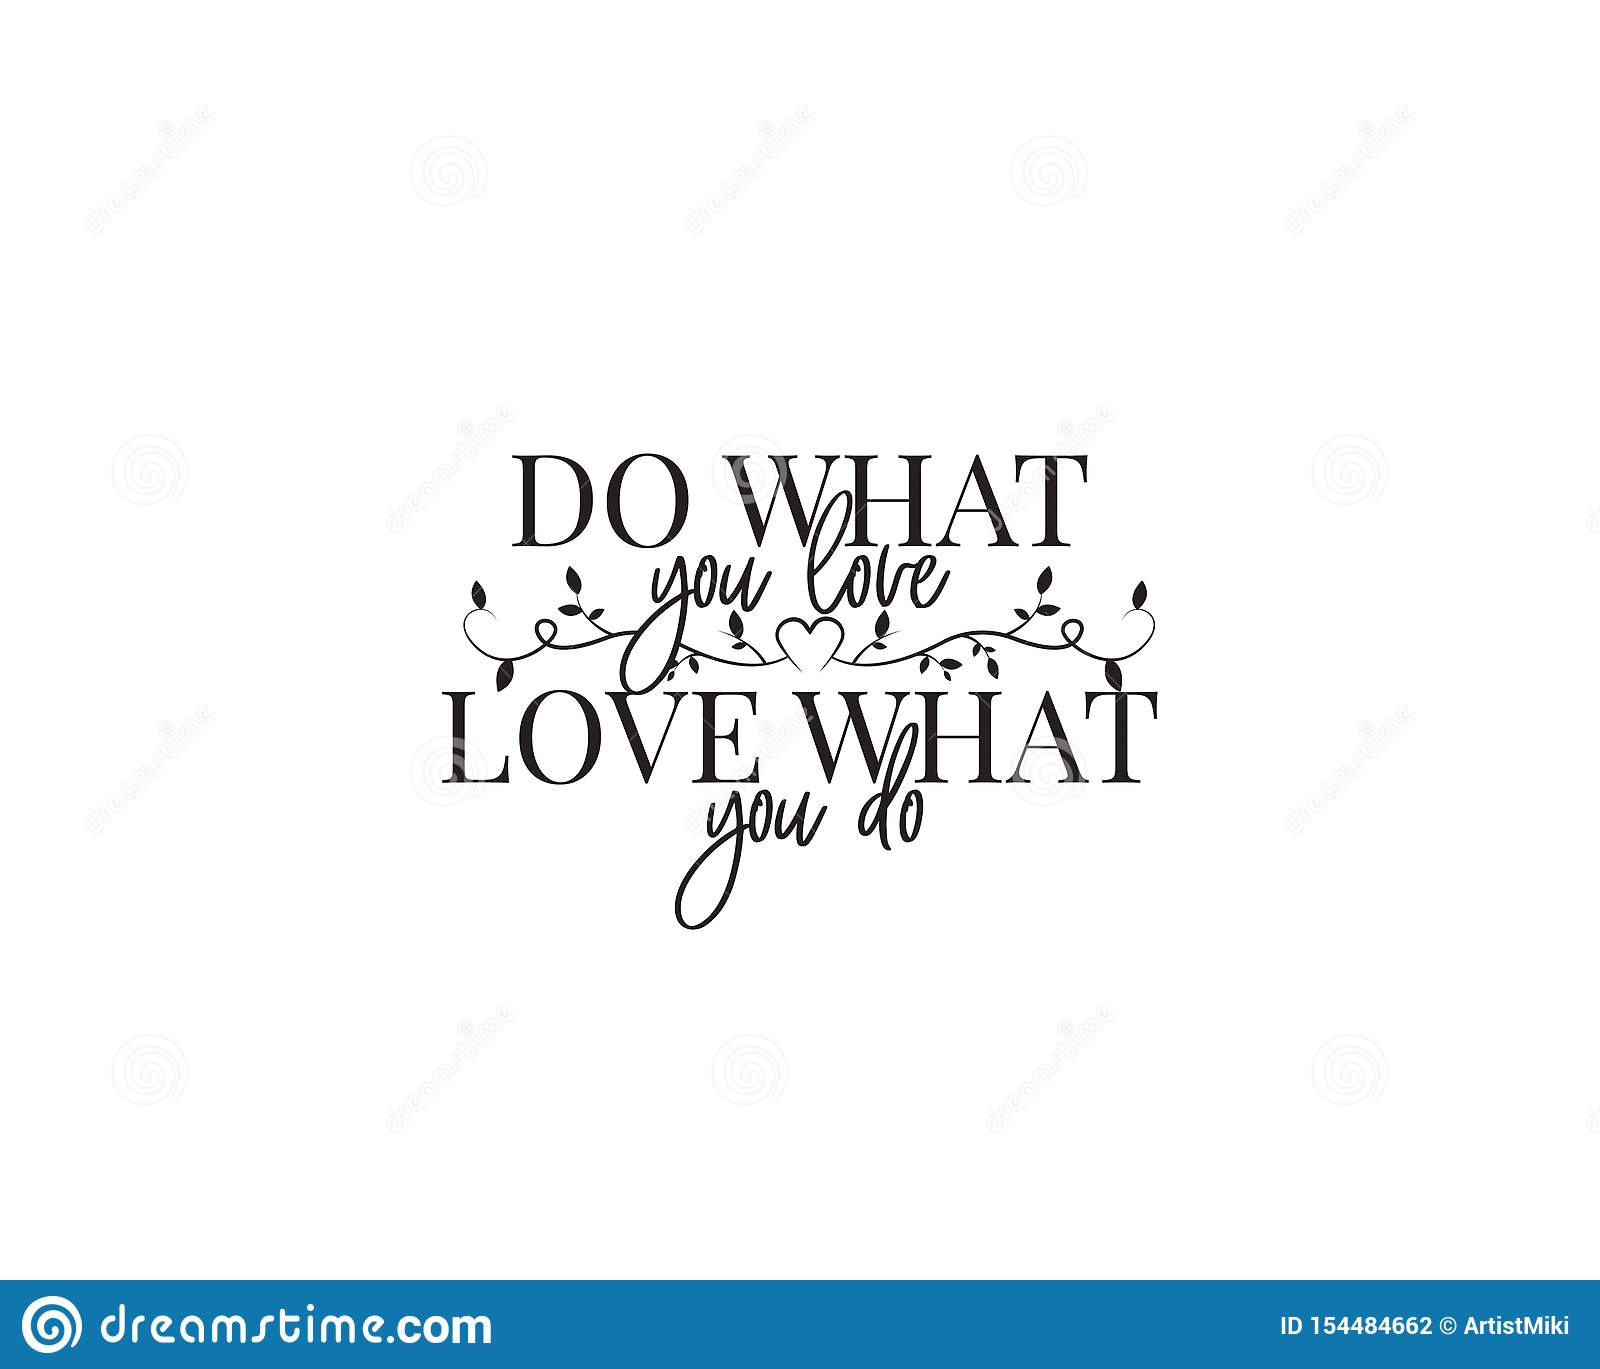 Do What You Love Love What You Do Vector Motivational Inspirational Life Quotes Wall Art Decor Wall Decals Stock Vector Illustration Of Quote Decals 154484662